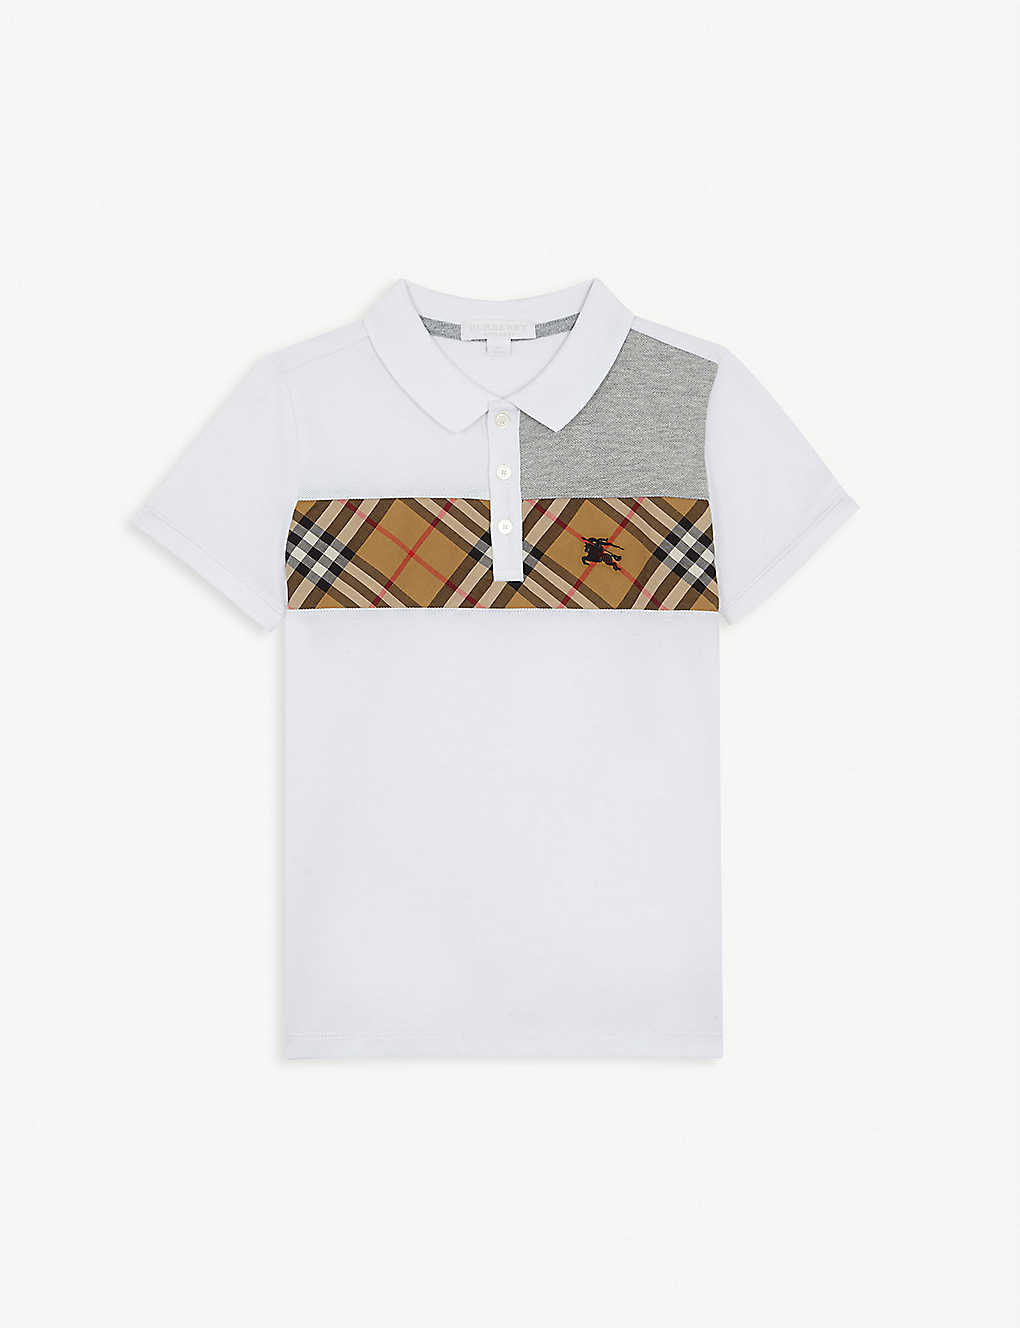 9a5df4535 BURBERRY - Check print contrast cotton polo shirt 4-14 years ...